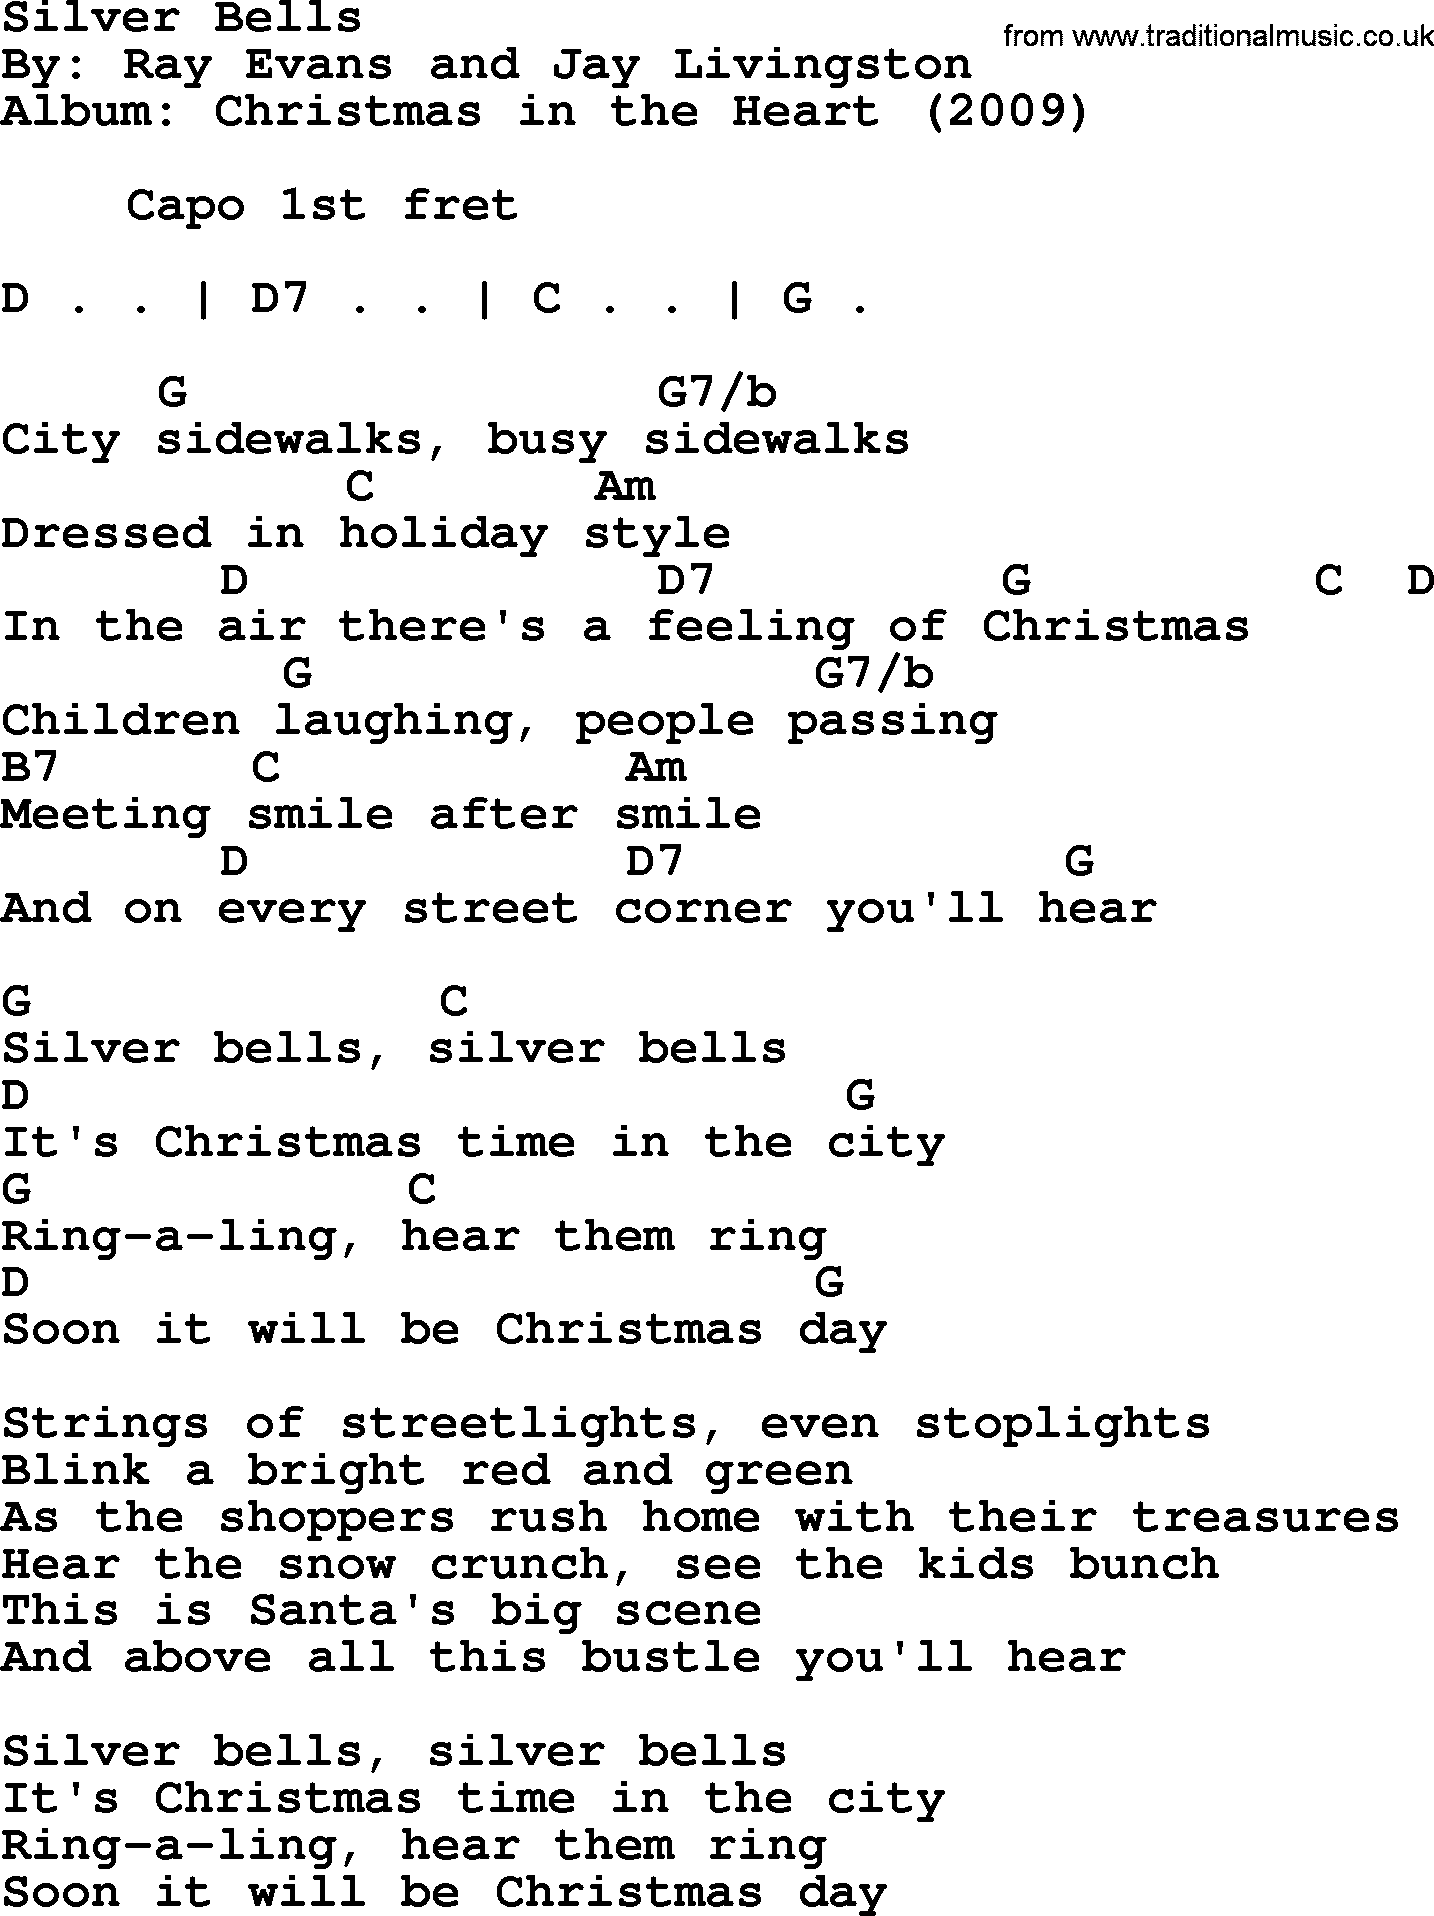 Bob Dylan song - Silver Bells, lyrics and chords